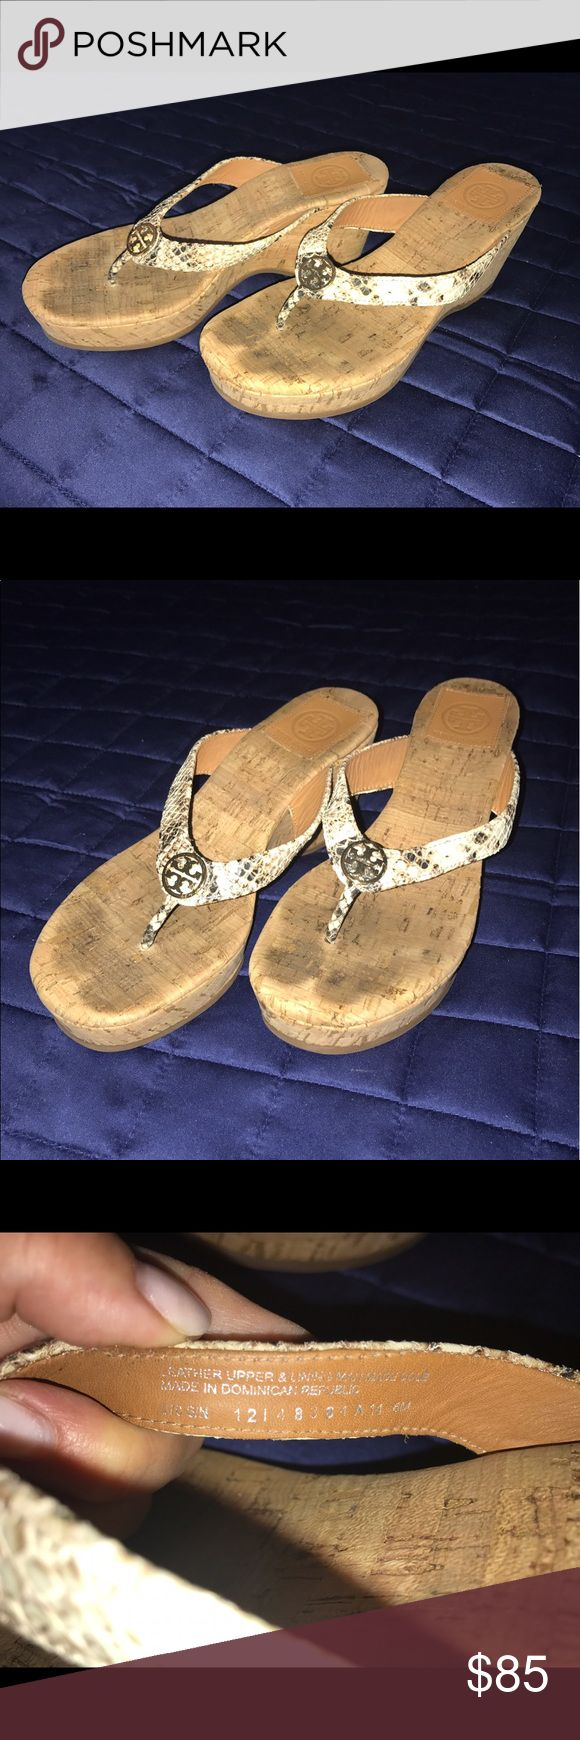 Shop Women's Tory Burch White Gold size Sandals at a discounted price at  Poshmark. Description: Tory Burch cork wedges with snake skin leather  straps.